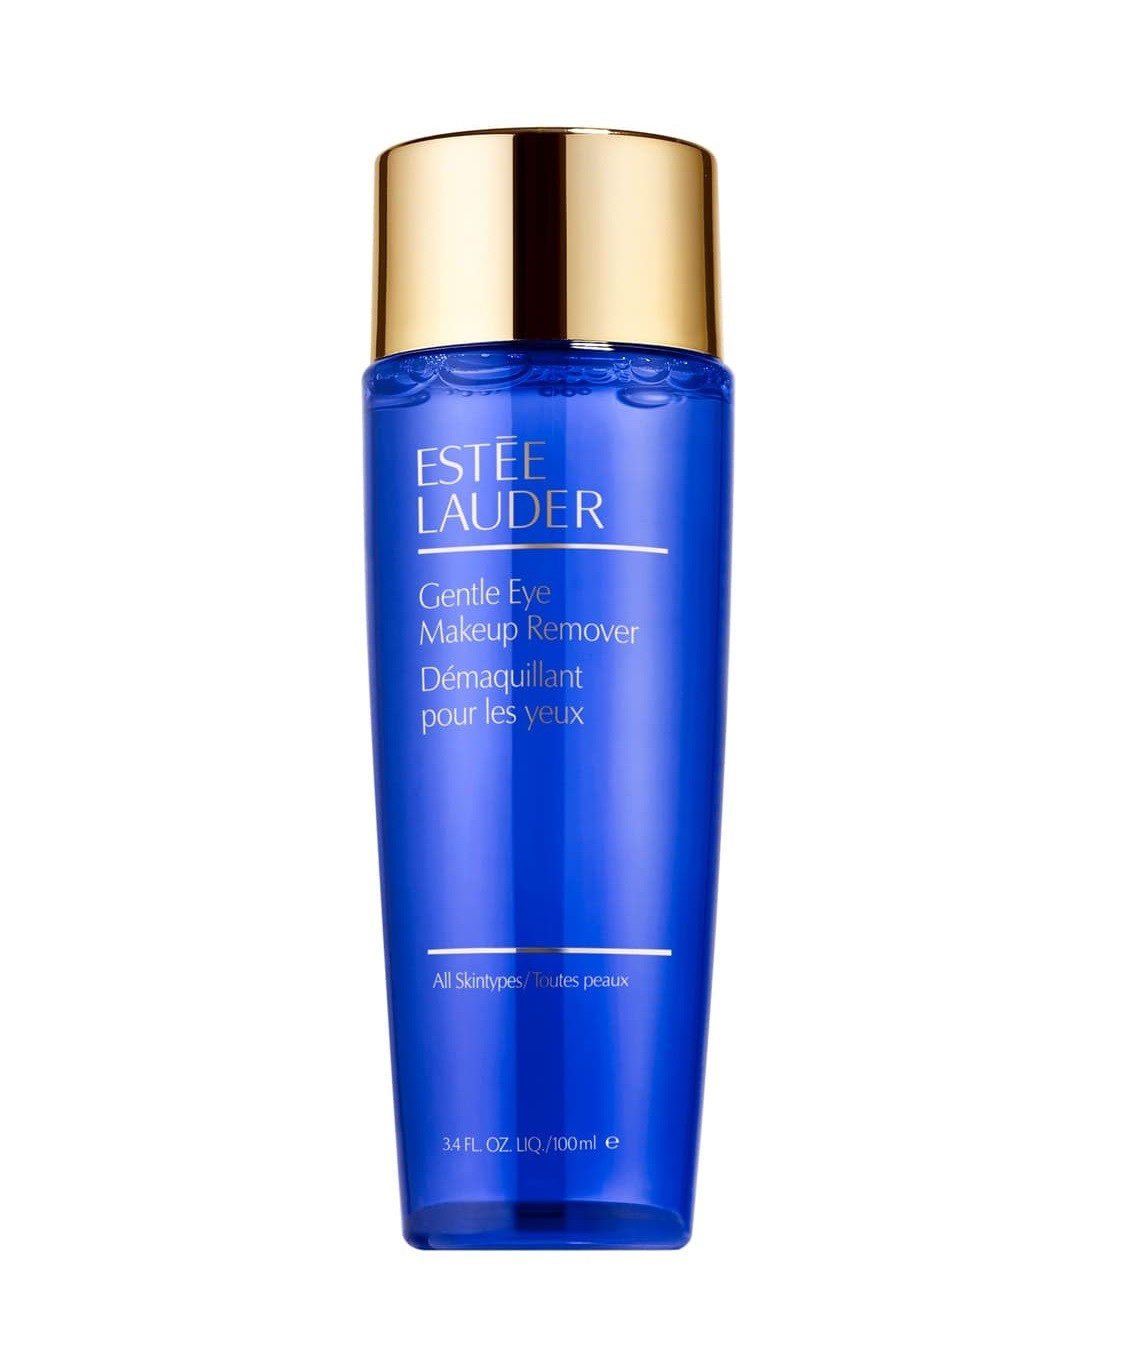 Gentle Eye Makeup Remover ESTÉE LAUDER